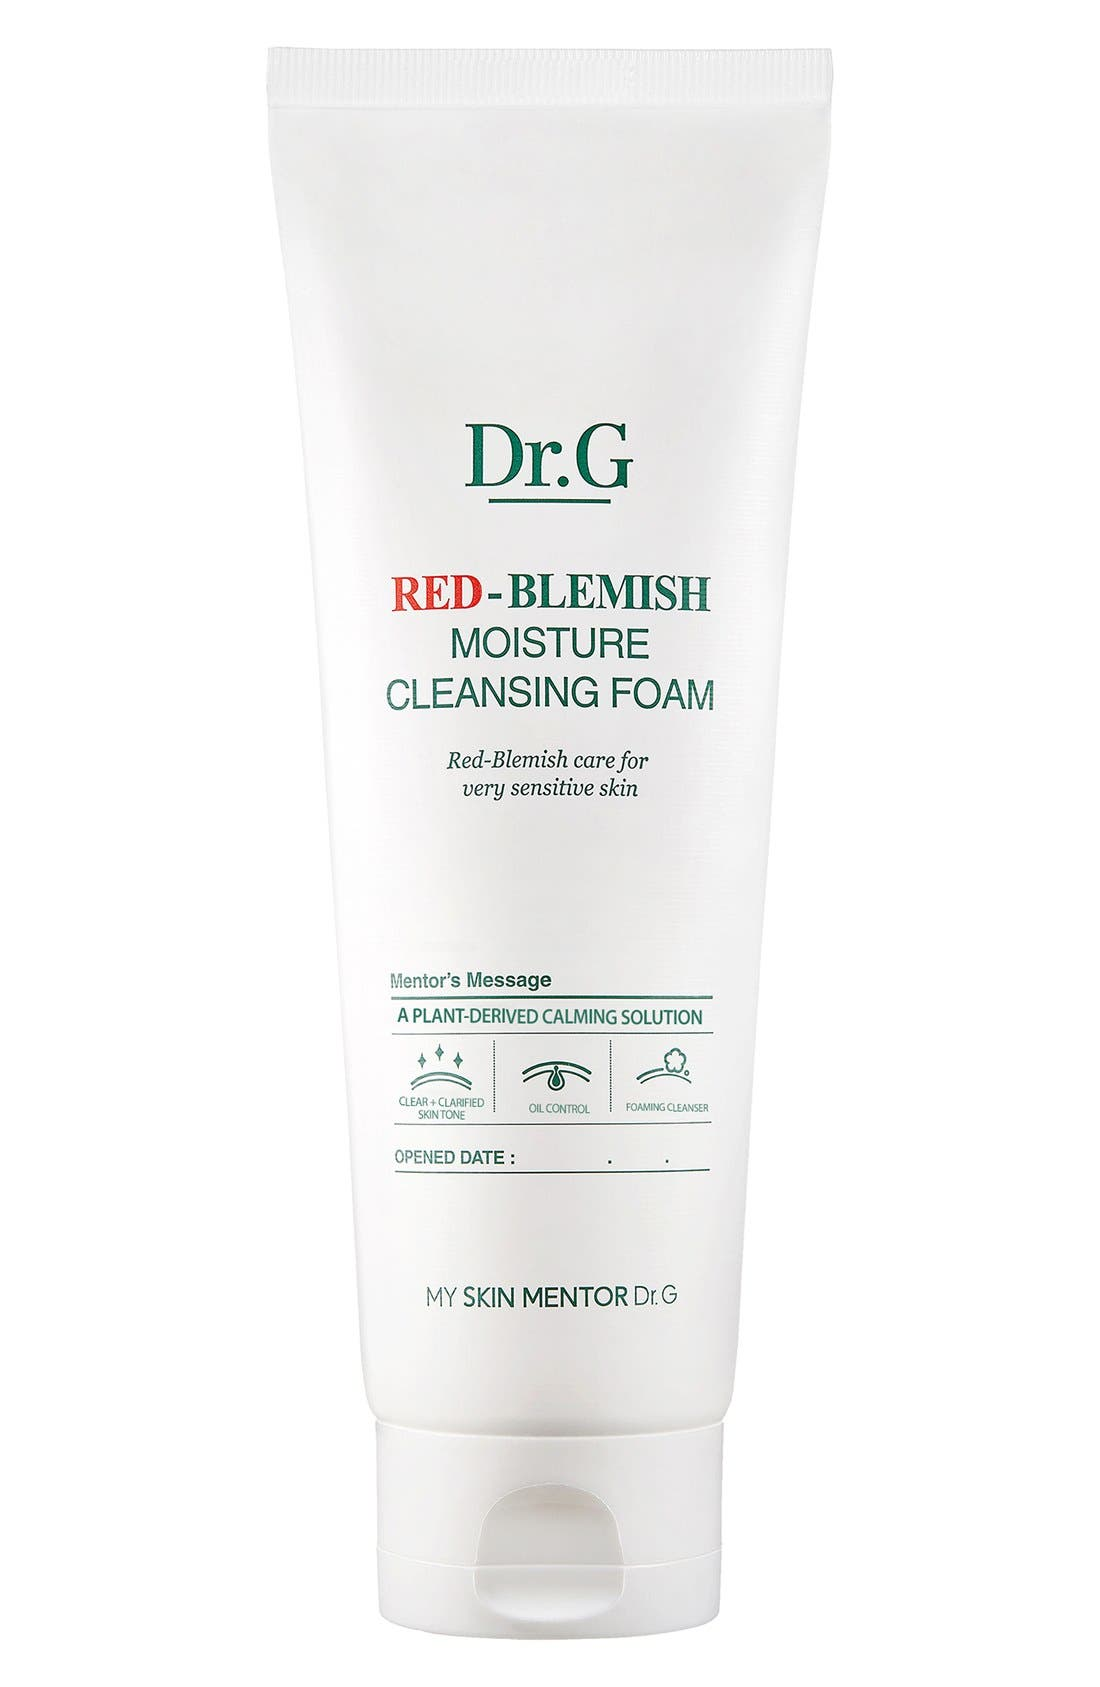 My Skin Mentor Dr. G Beauty Red-Blemish Moisture Cleansing Foam